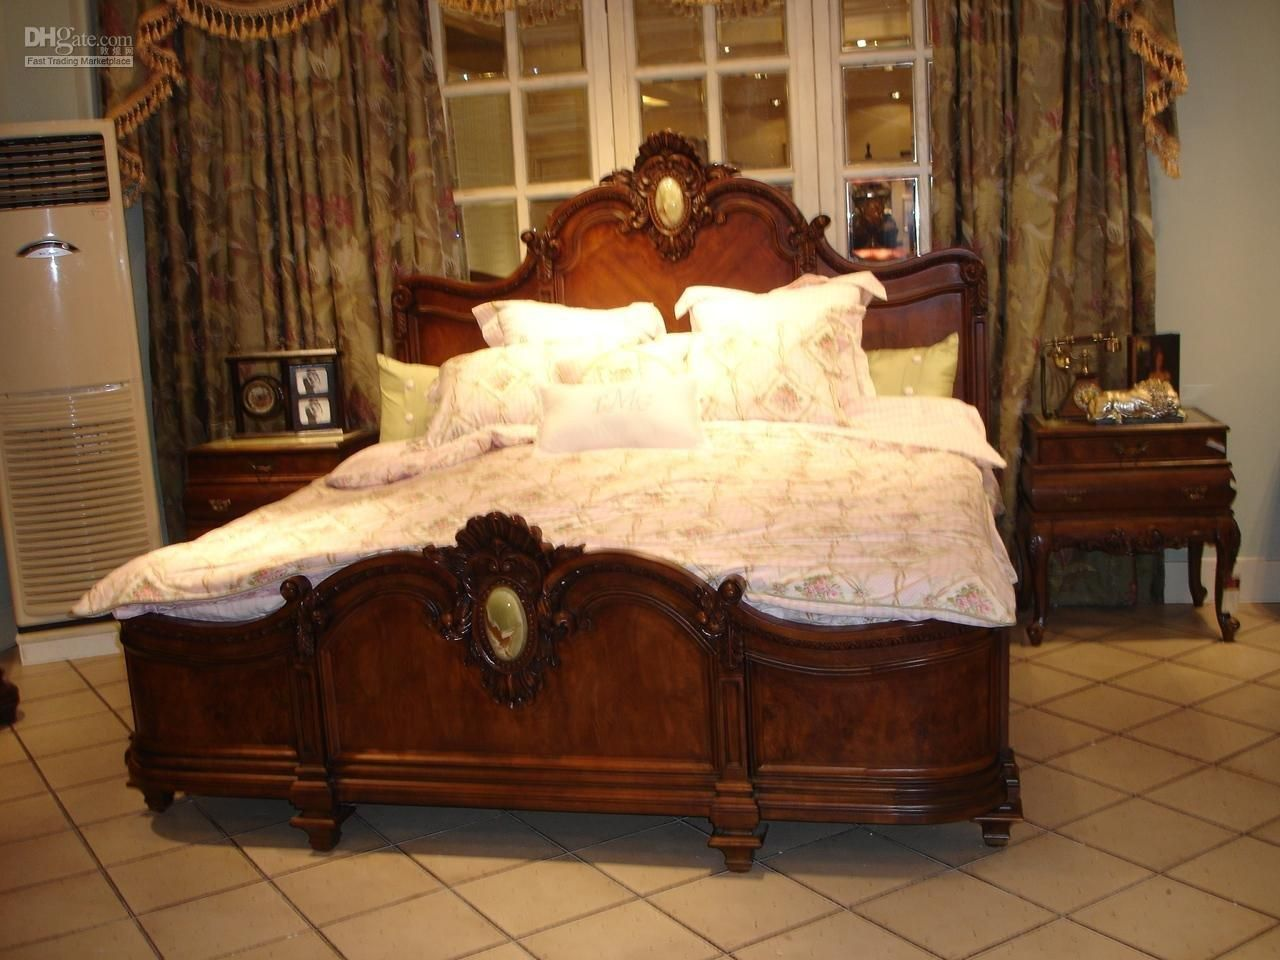 Wooden bed furniture design - Furniture Wooden Antique Furniture Designs